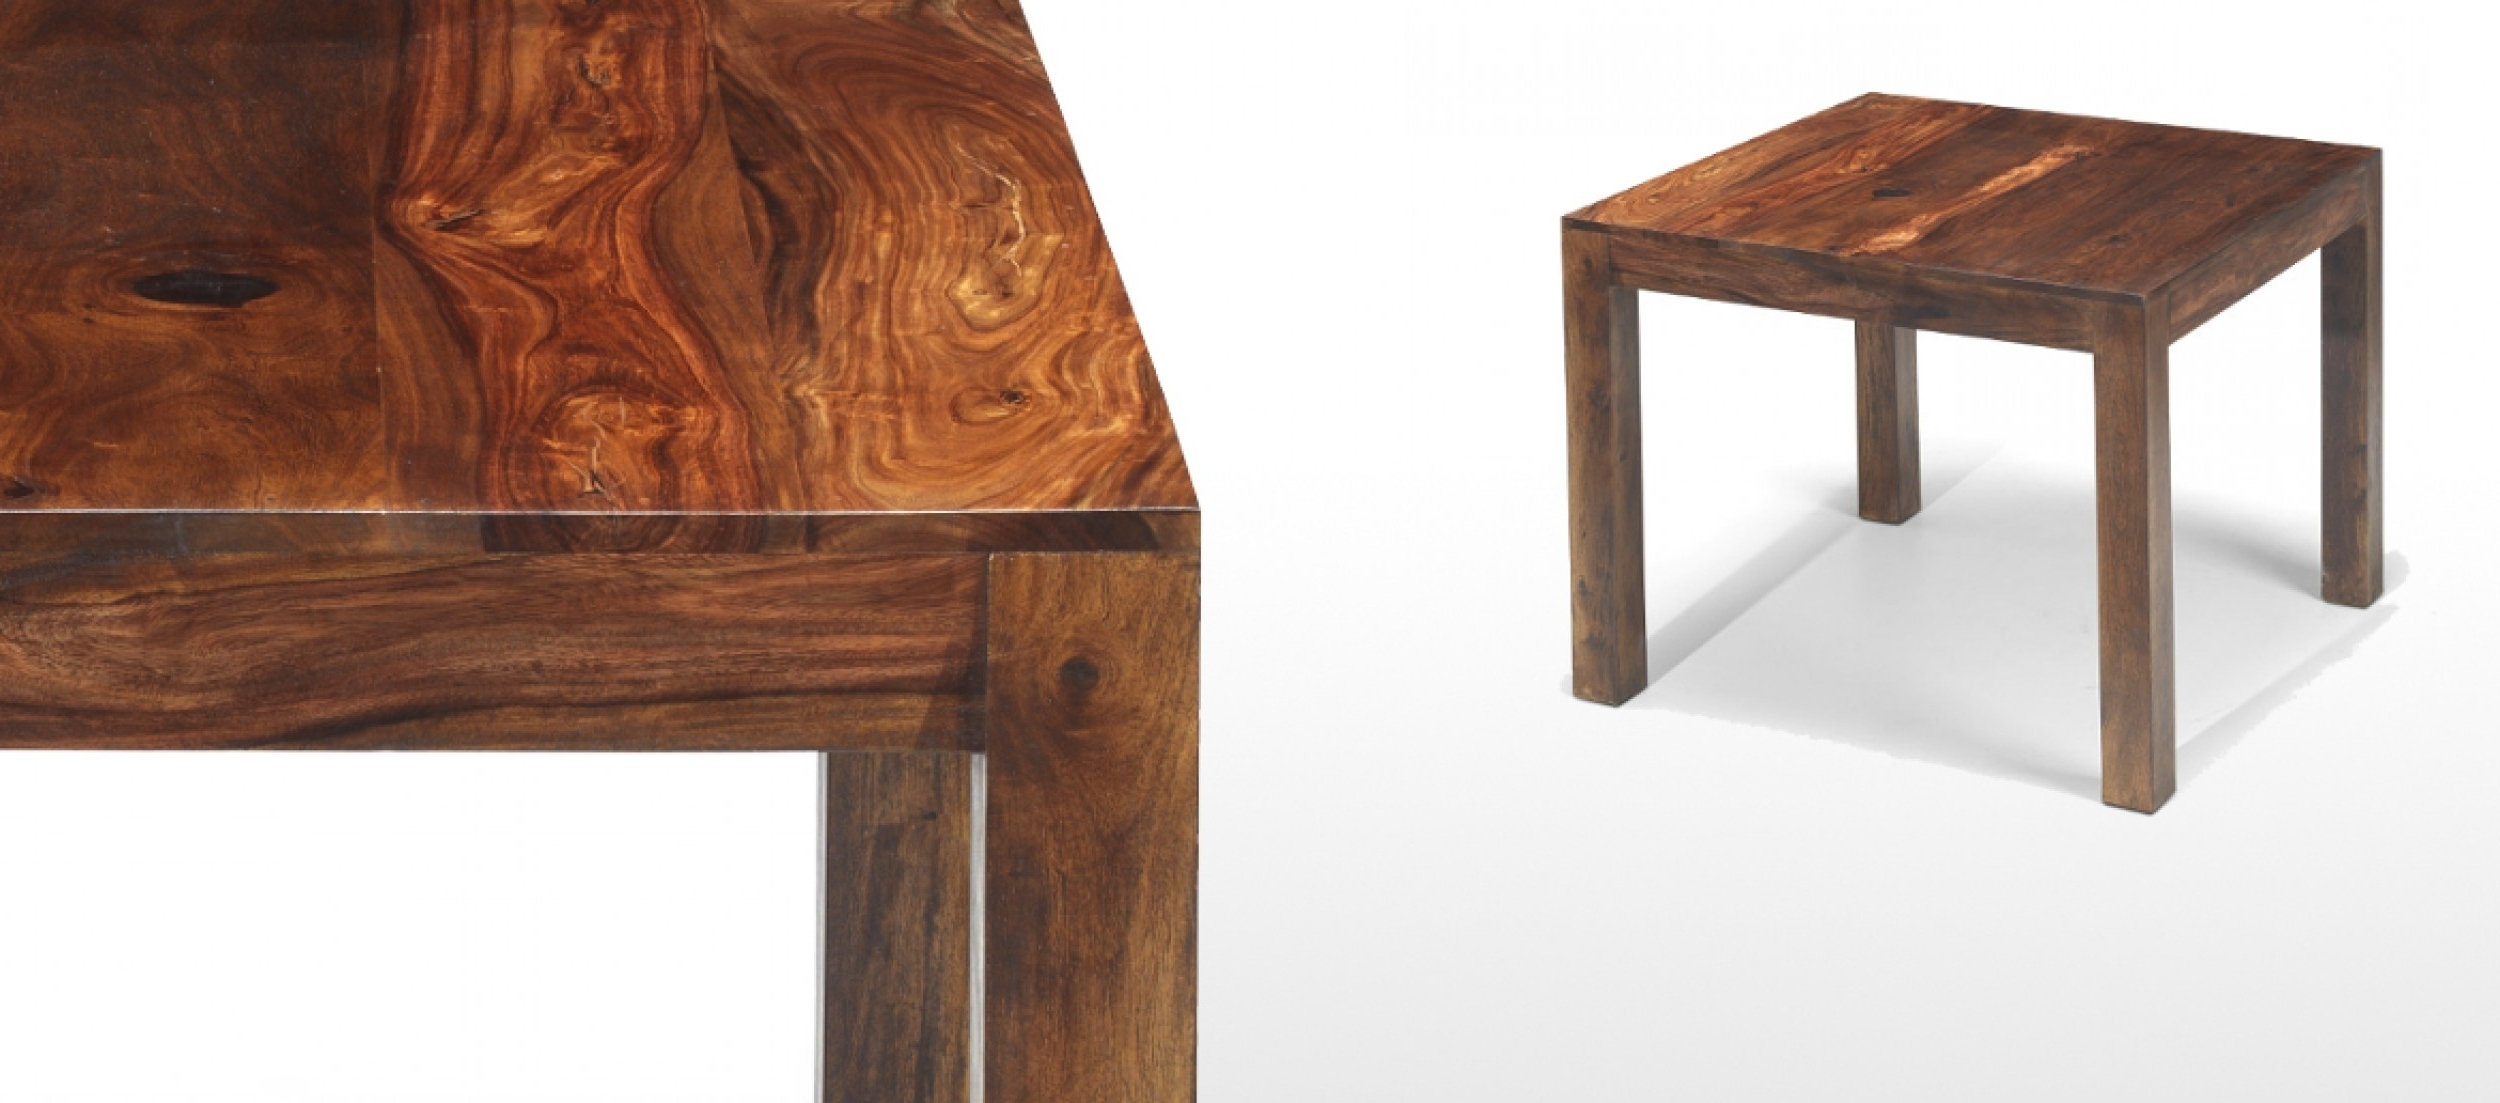 Quercus Living Intended For Well Known Sheesham Wood Dining Tables (View 10 of 25)